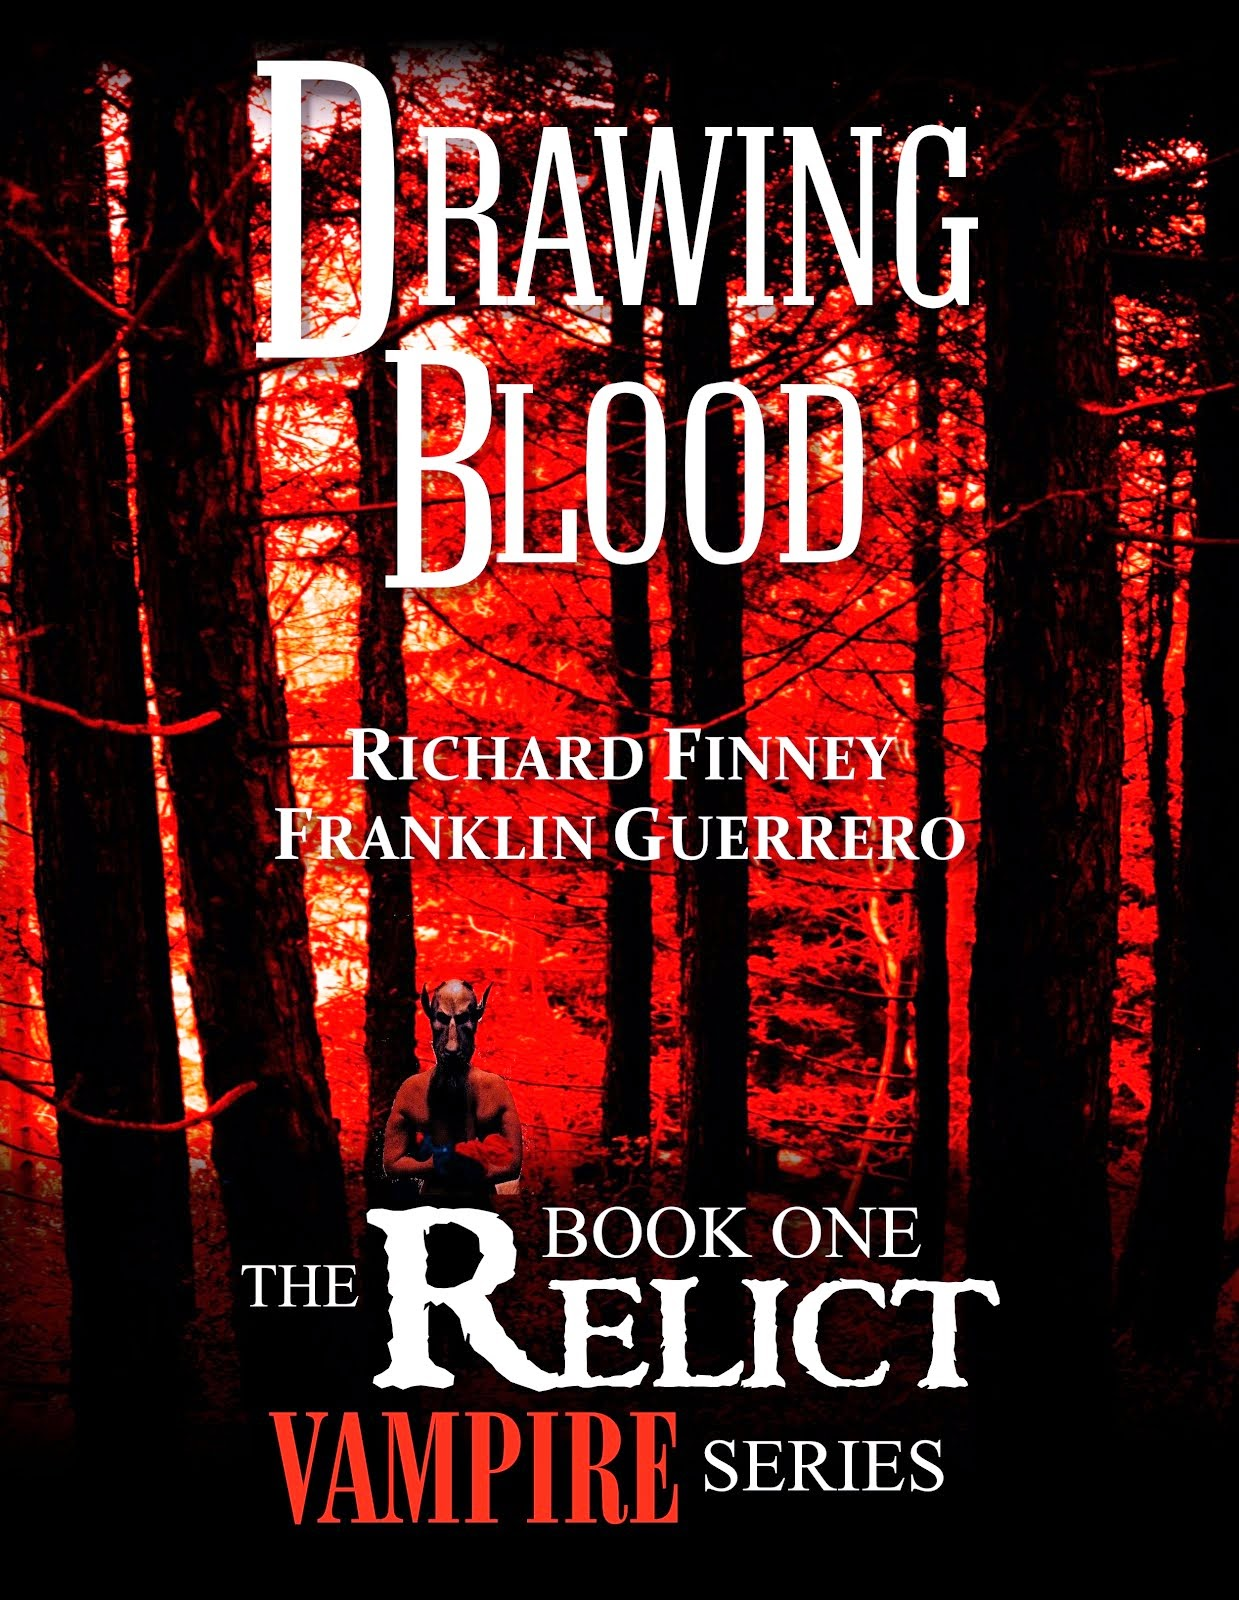 THE RELICT VAMPIRE BOOK SERIES